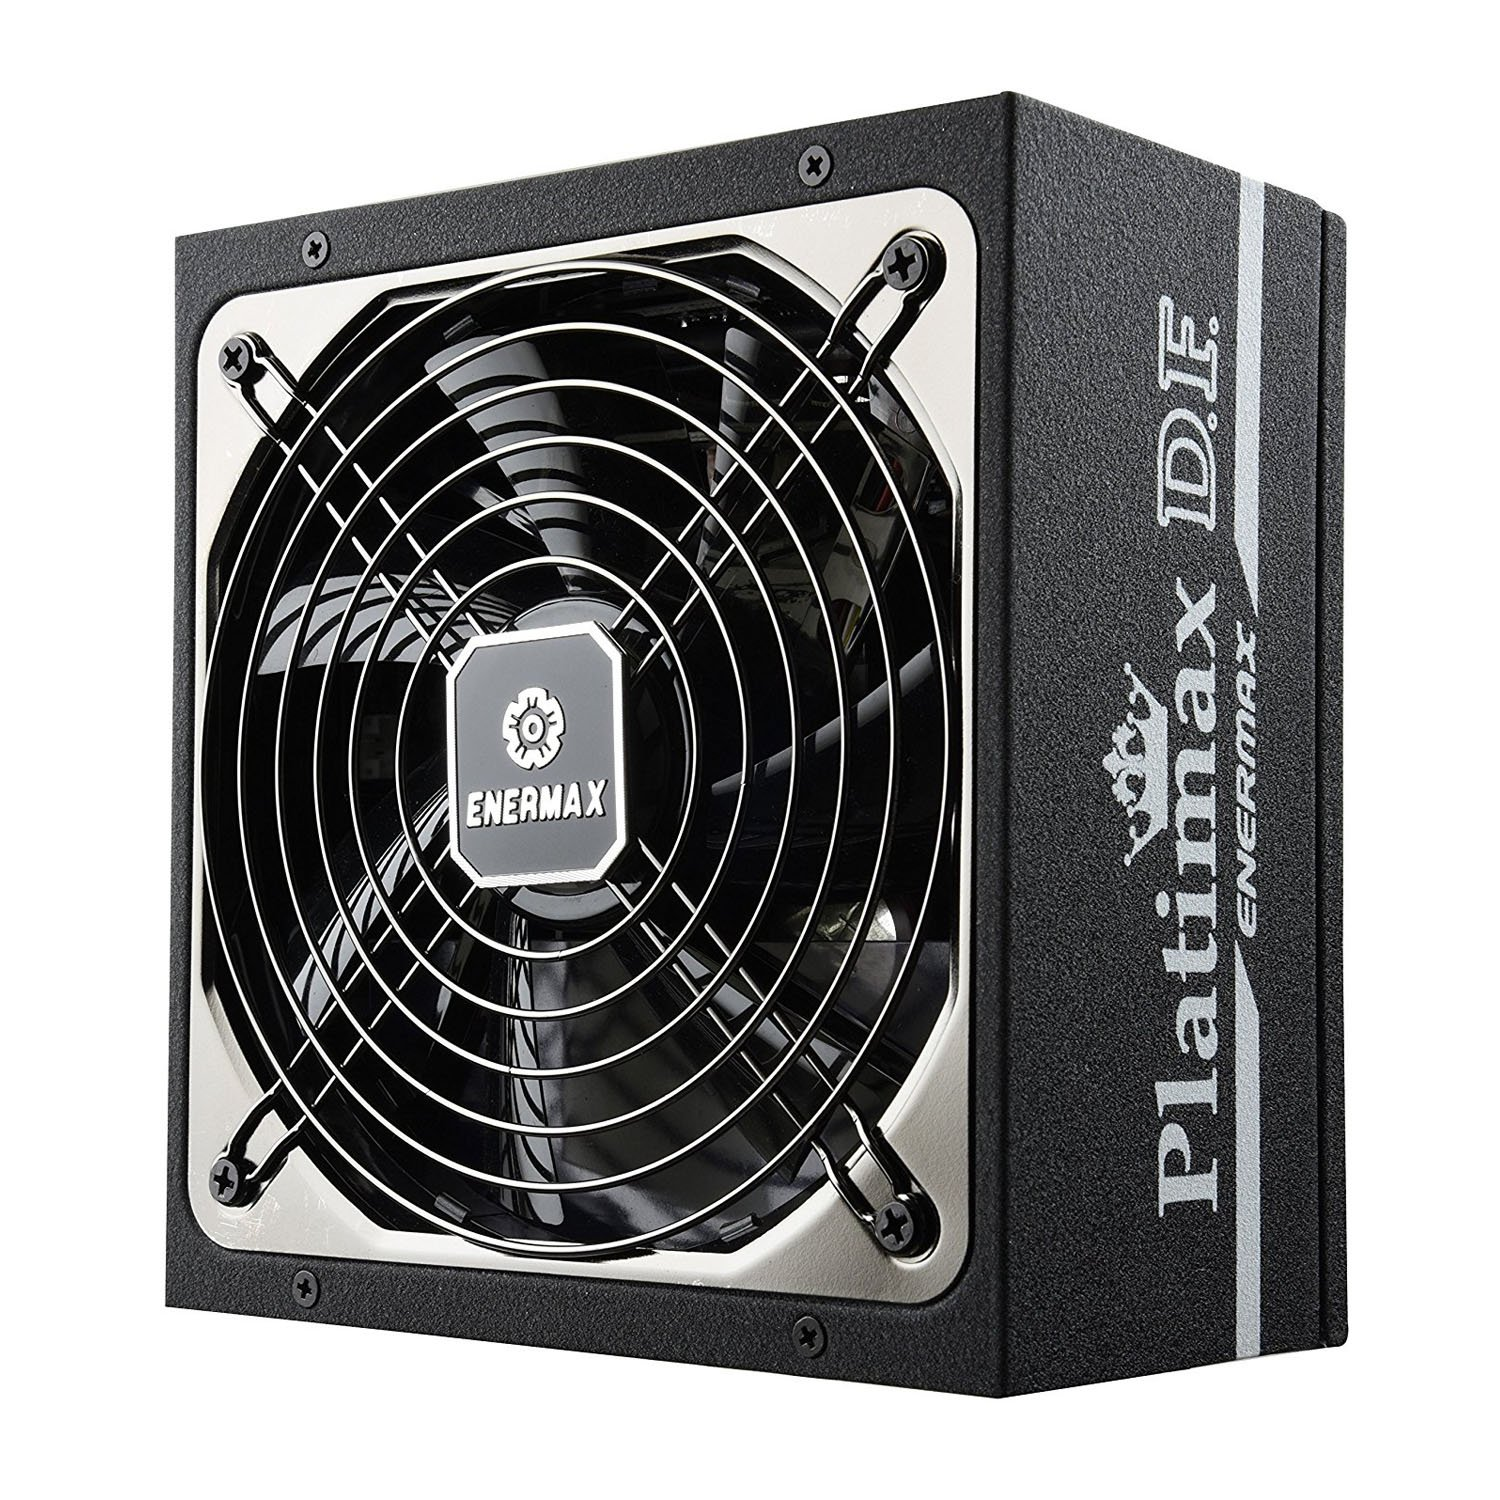 Enermax Platimax D.F. 80 PLUS Platinum Certified Full Modular 1200W Power Supply with Amazing DFR Technolohy and D.F. switch, Individual Sleeved Cable, 10 years Warranty , EPF1200EWT by Enermax (Image #3)